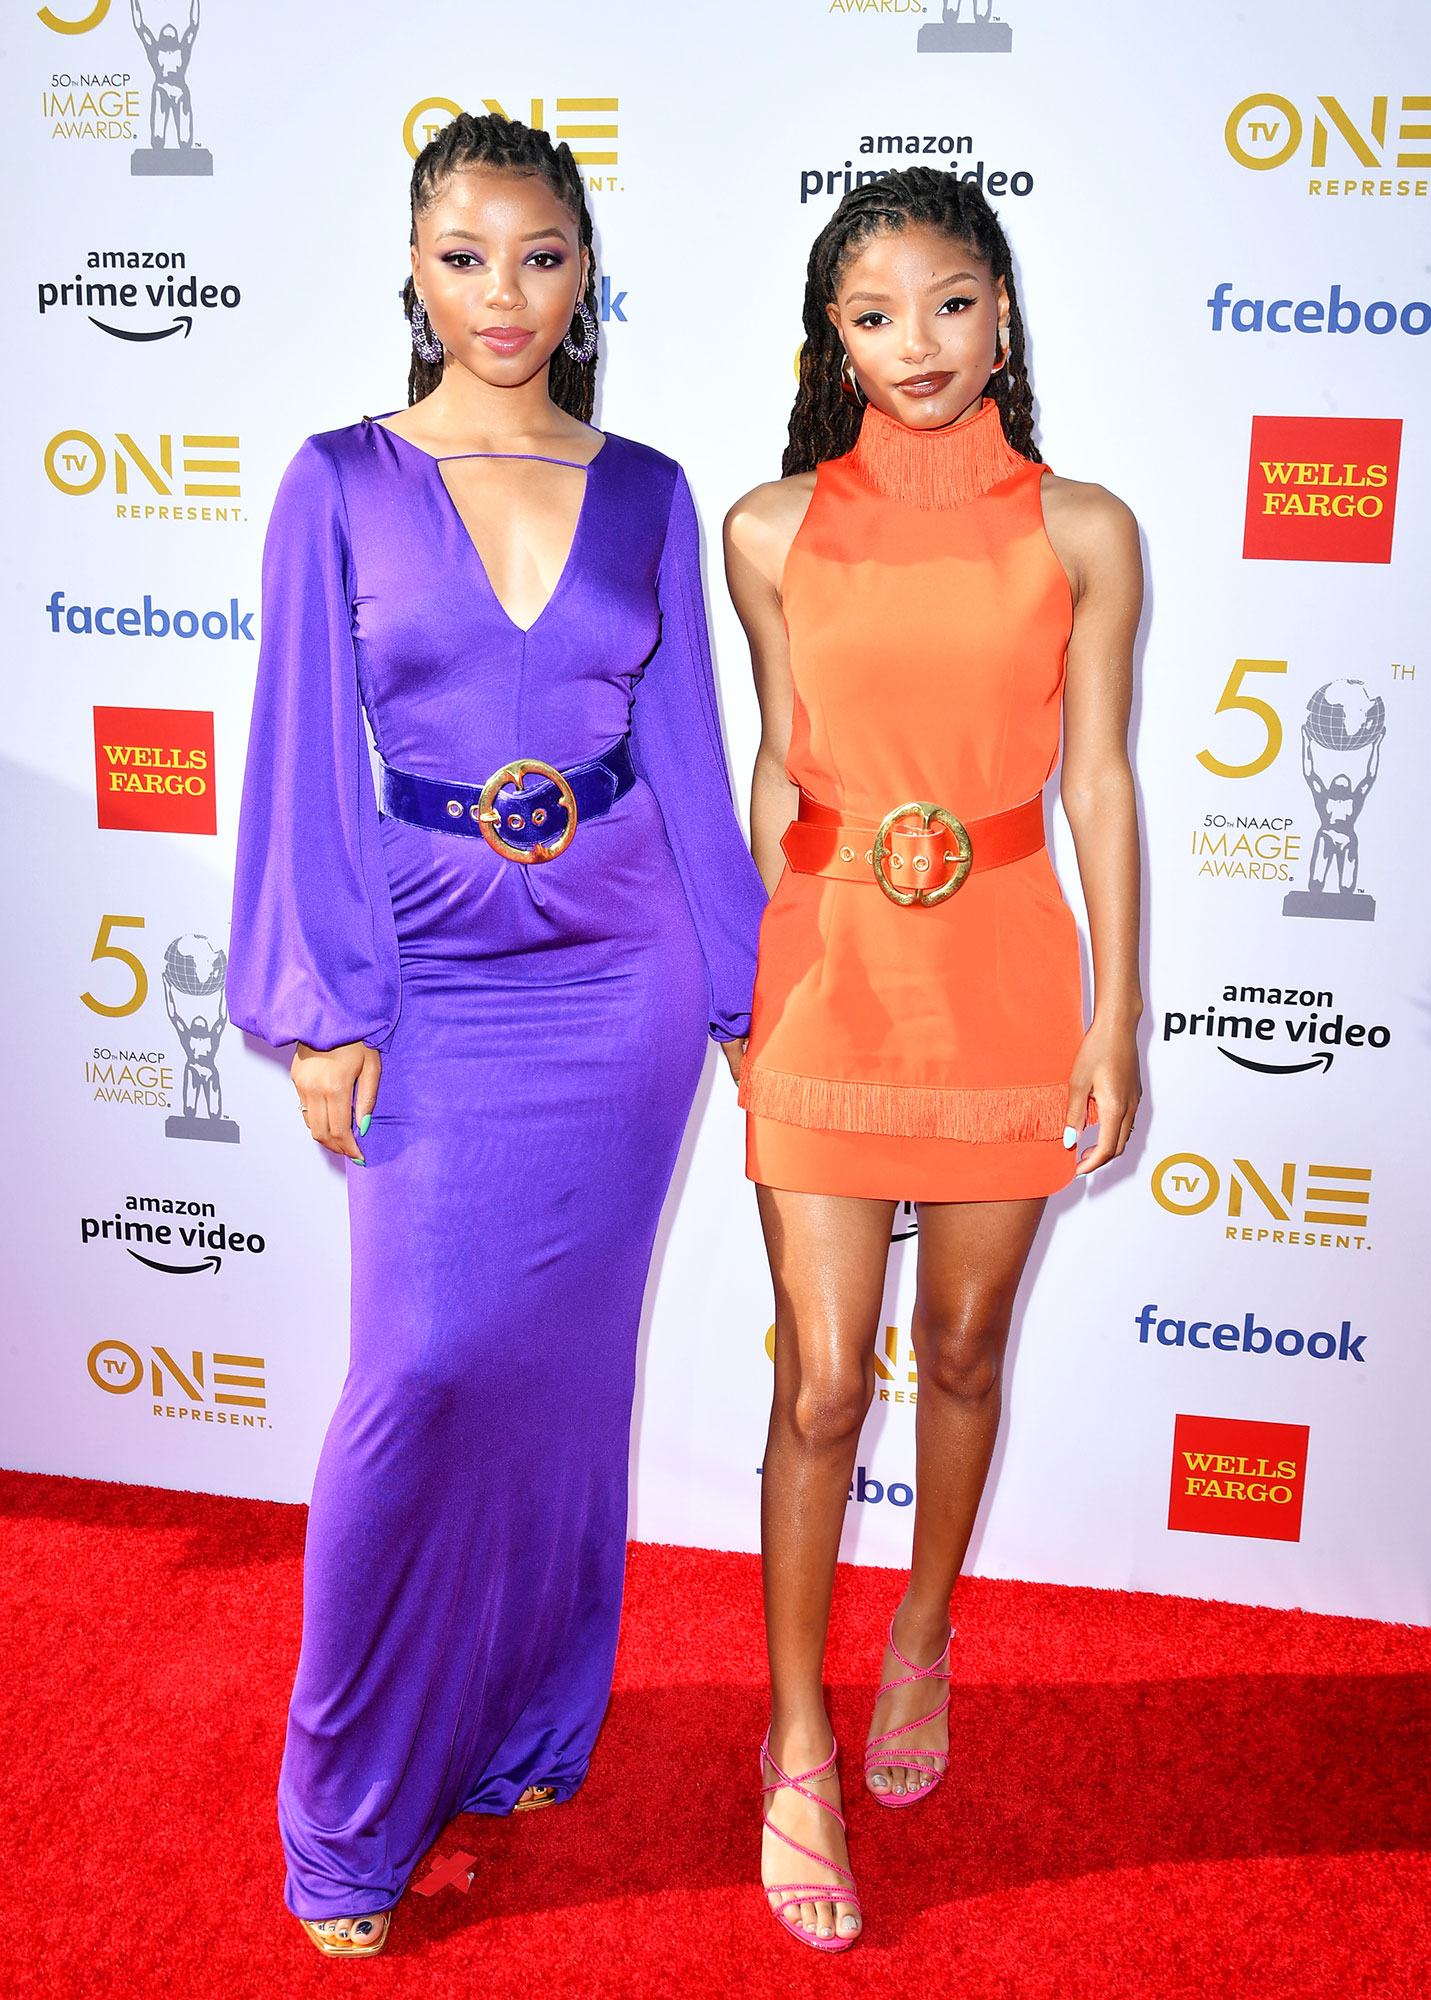 Chloe Bailey and Halle Bailey of Chloe x Halle See the Stars at the NAACP Image Awards - Wearing a purple belted maxi dress and orange mini respectively. Halle accessorized with AUrate earrings.